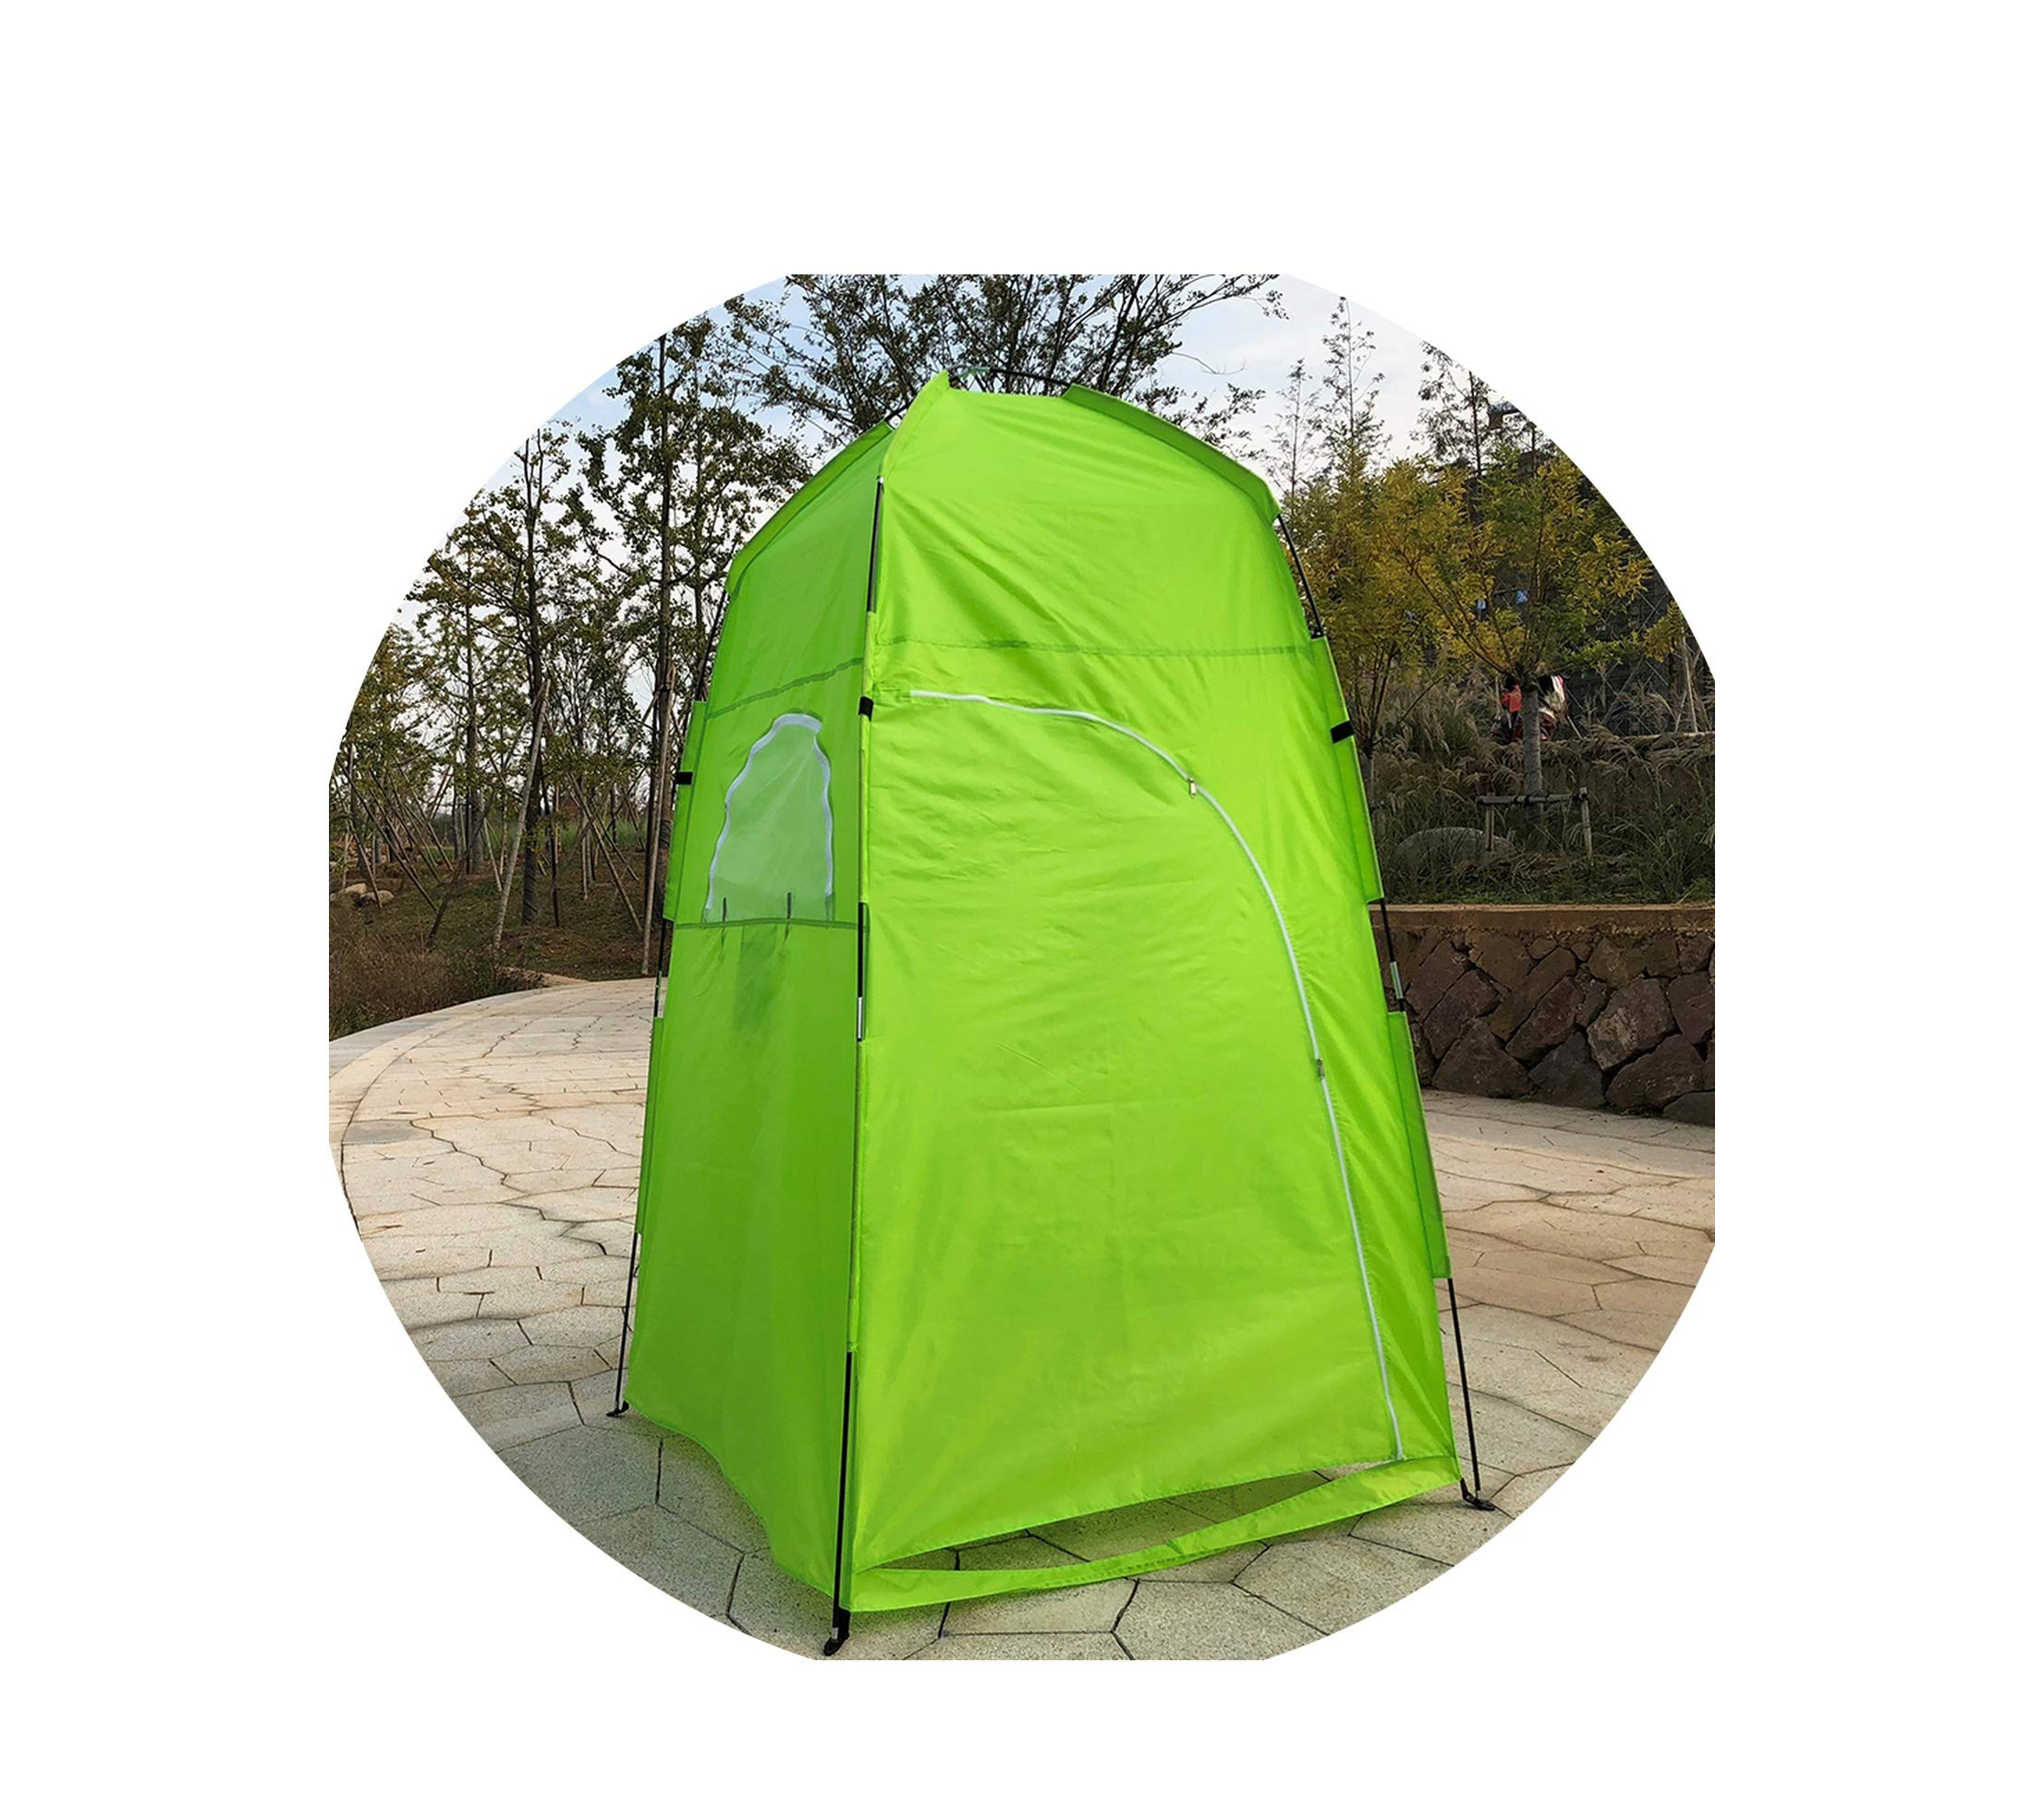 MOAAA-Pop-Up-Beach-Camping-Tent-Portable-Outdoor-Shower-Tent-Privacy-Toilet-Bath-Changing-Fitting-Room-Tent-Shelter